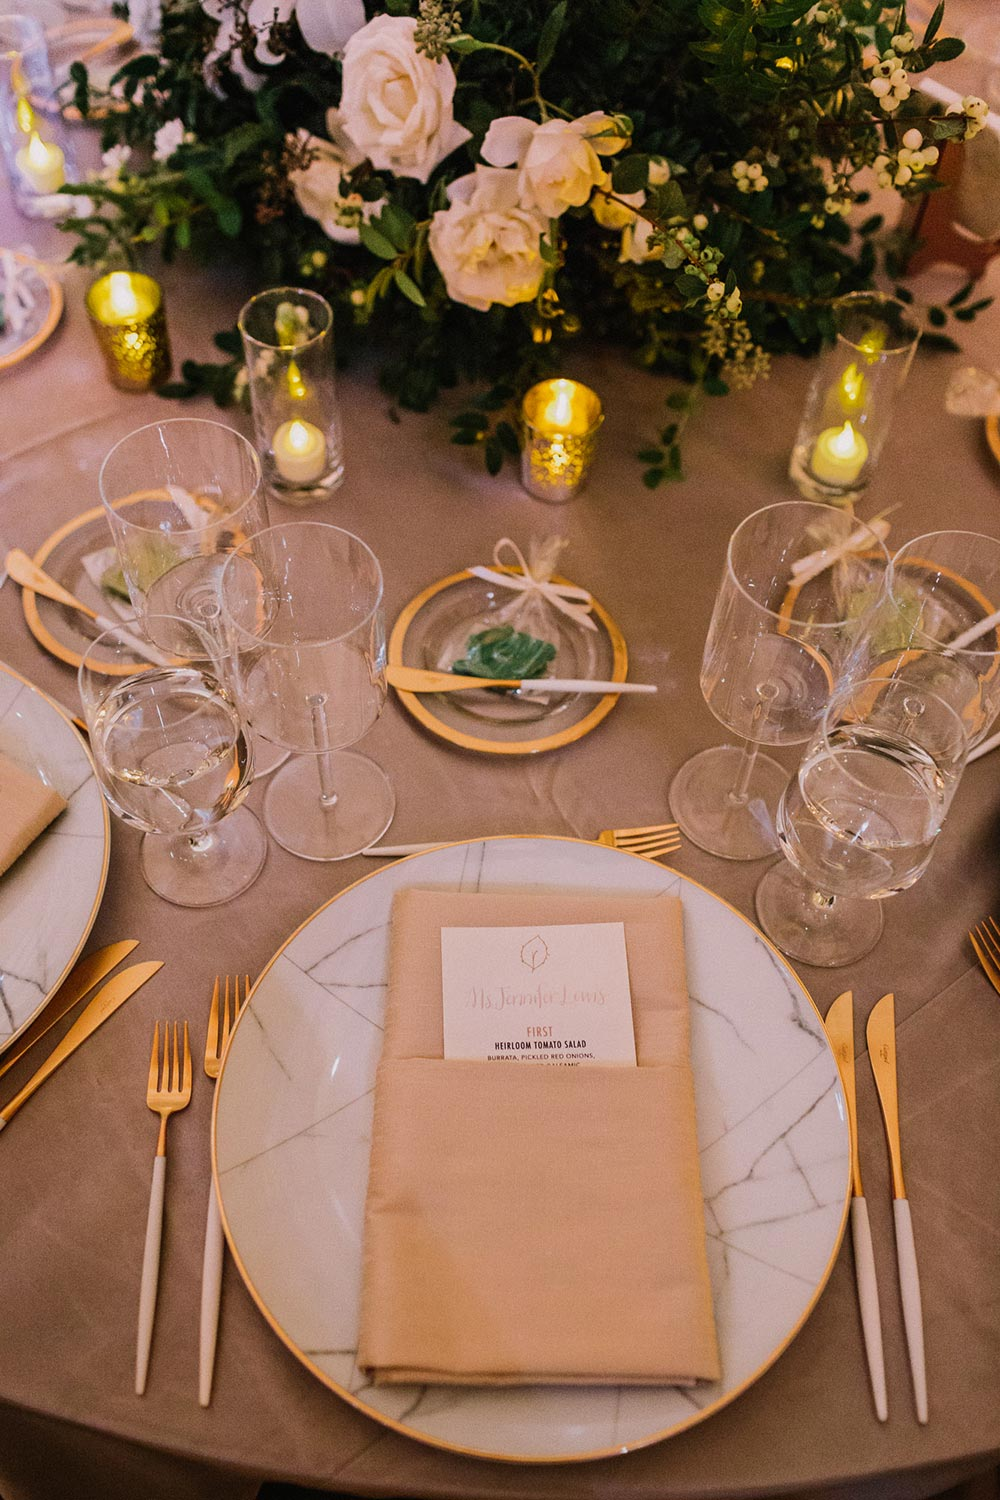 glamorous wedding place setting with textured plates